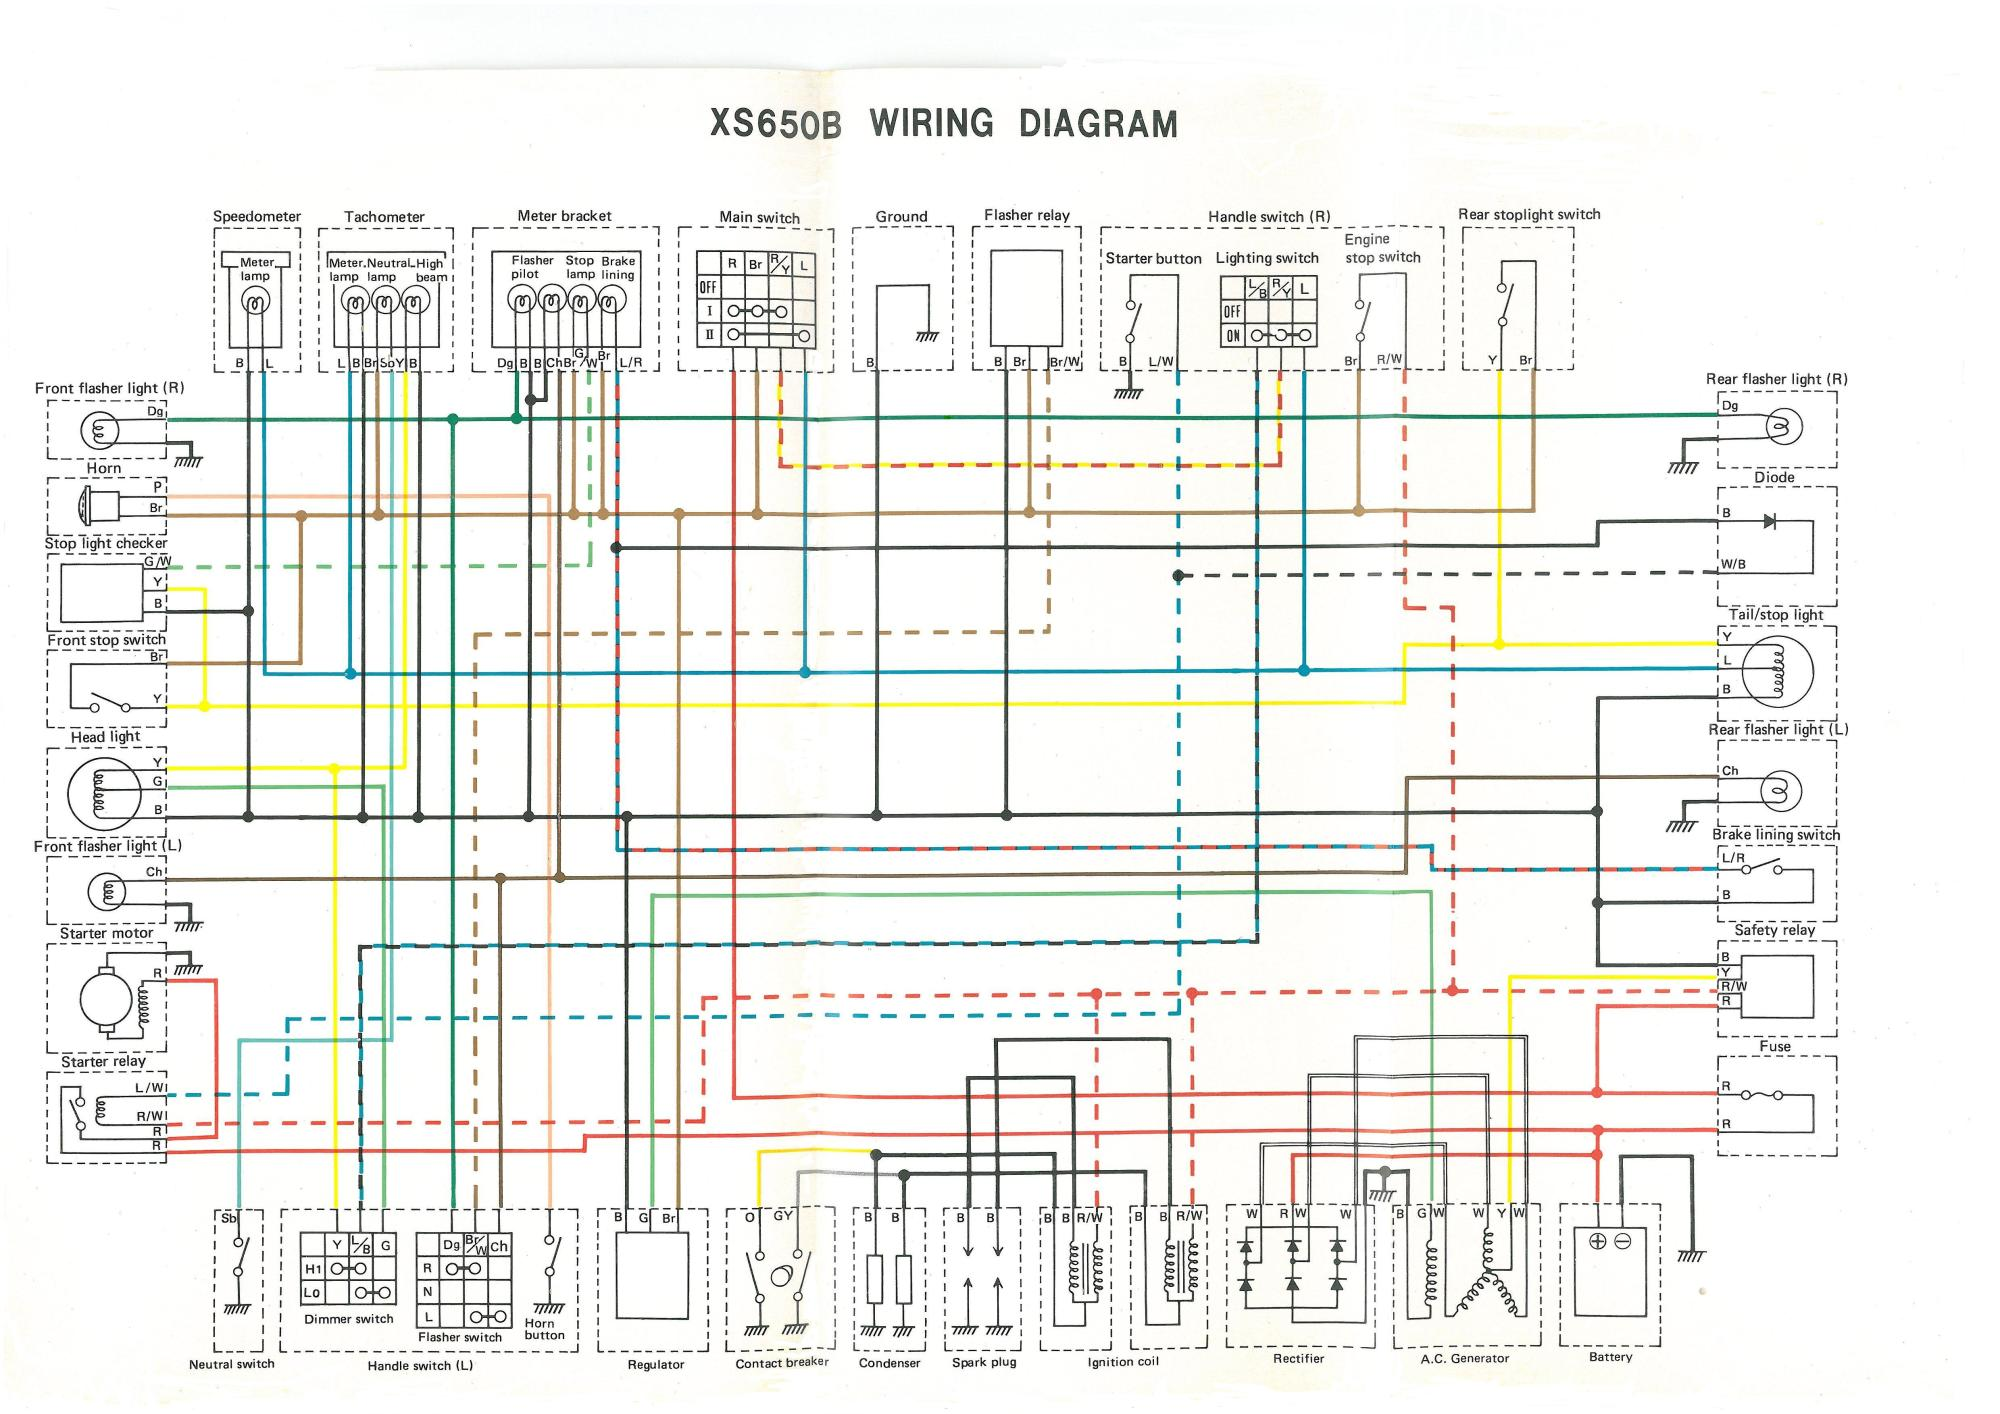 hight resolution of wiring diagram for 1973 yamaha xs650 wiring diagram operations xs650 chopper wiring harness 1973